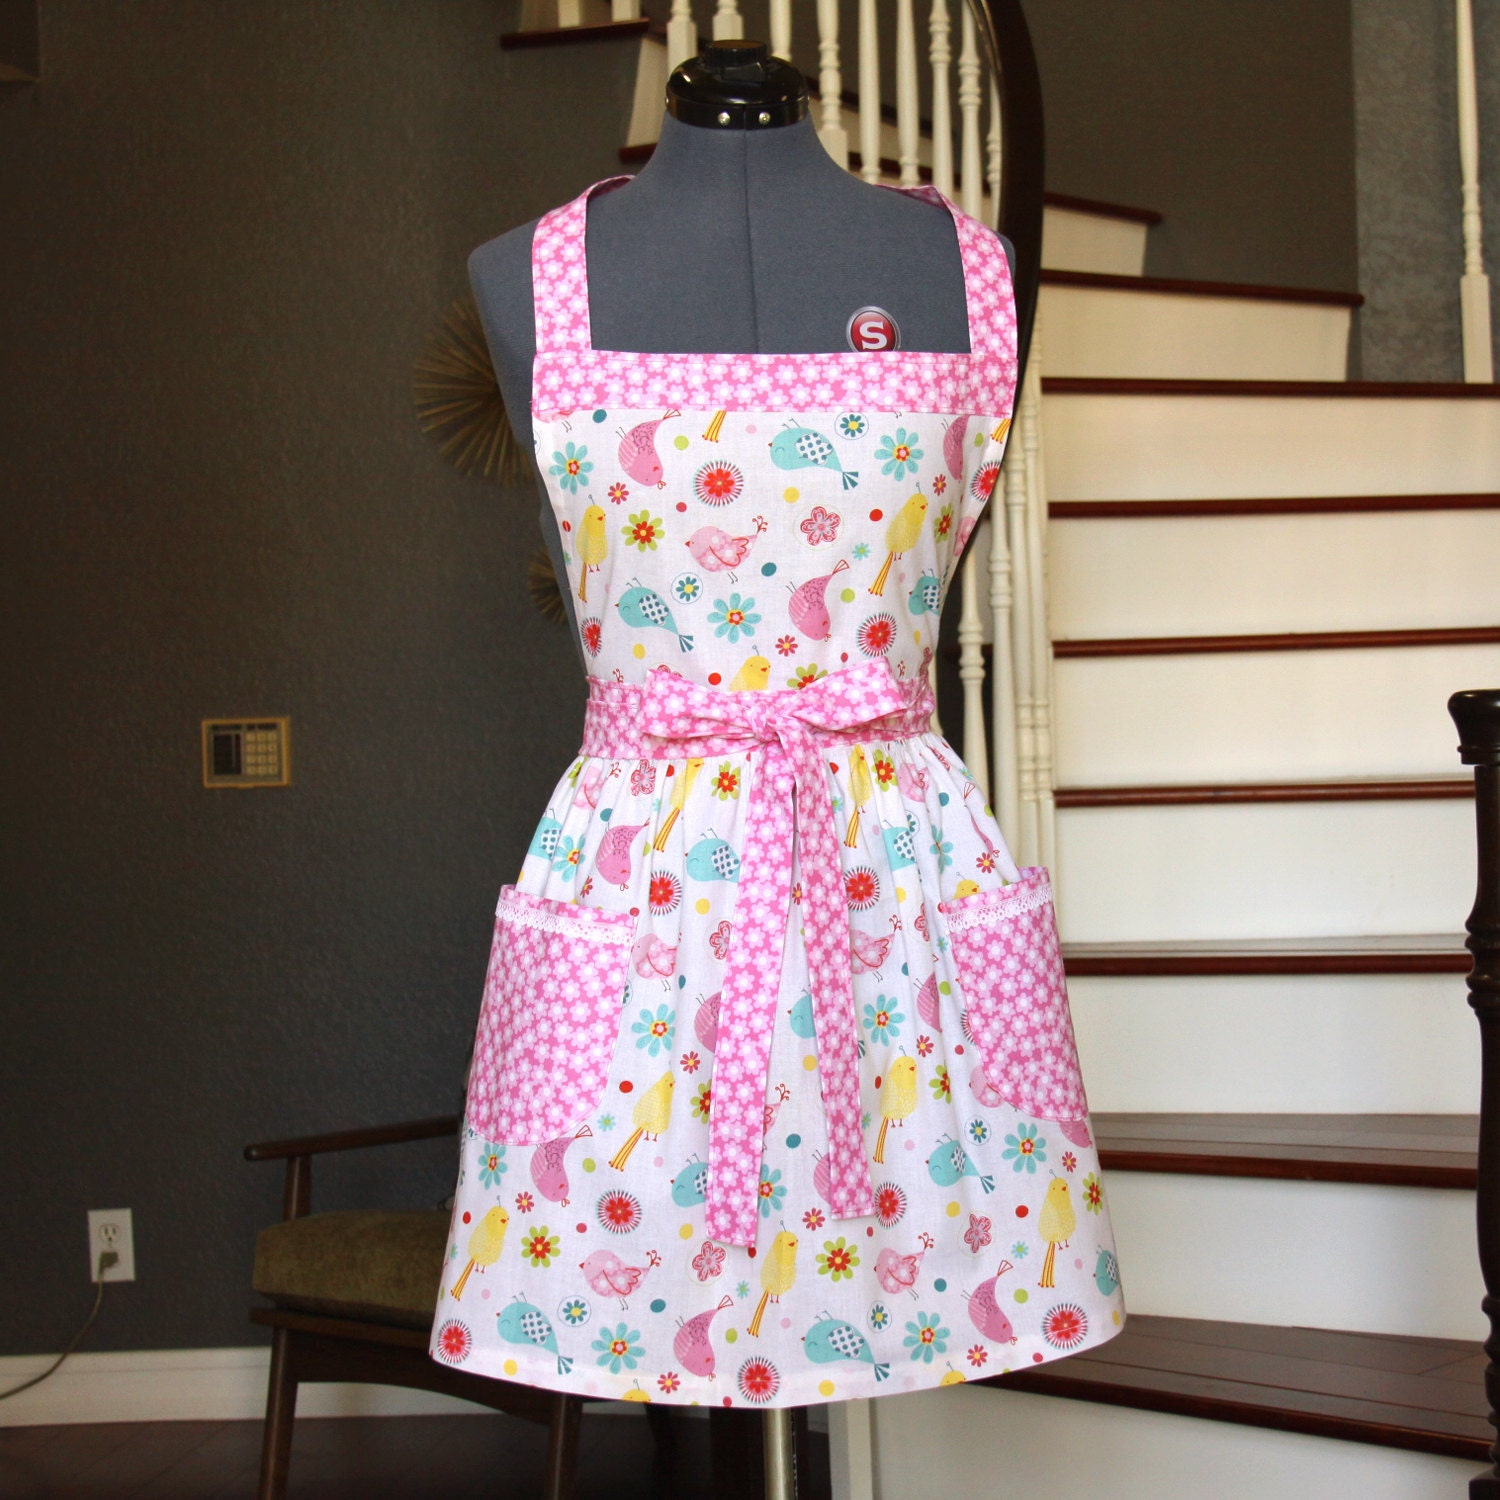 pink aprons for women aprons with pockets womens aprons by. Black Bedroom Furniture Sets. Home Design Ideas